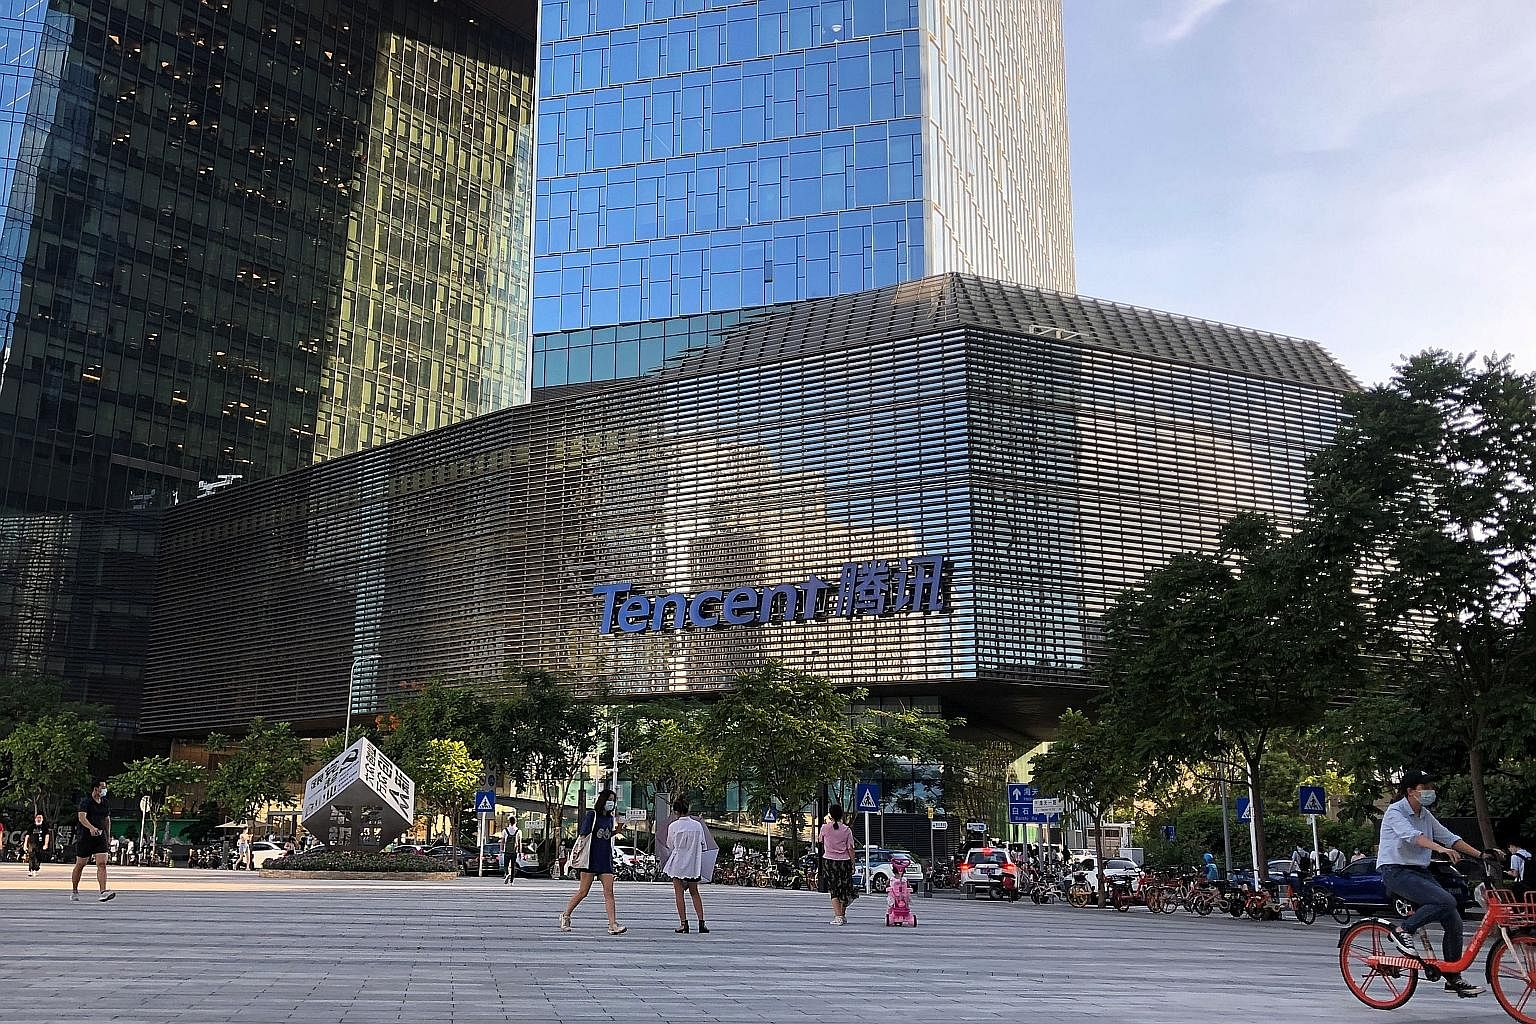 Shenzhen-based Tencent focused on instant messaging services initially, but has since expanded into other areas including games.